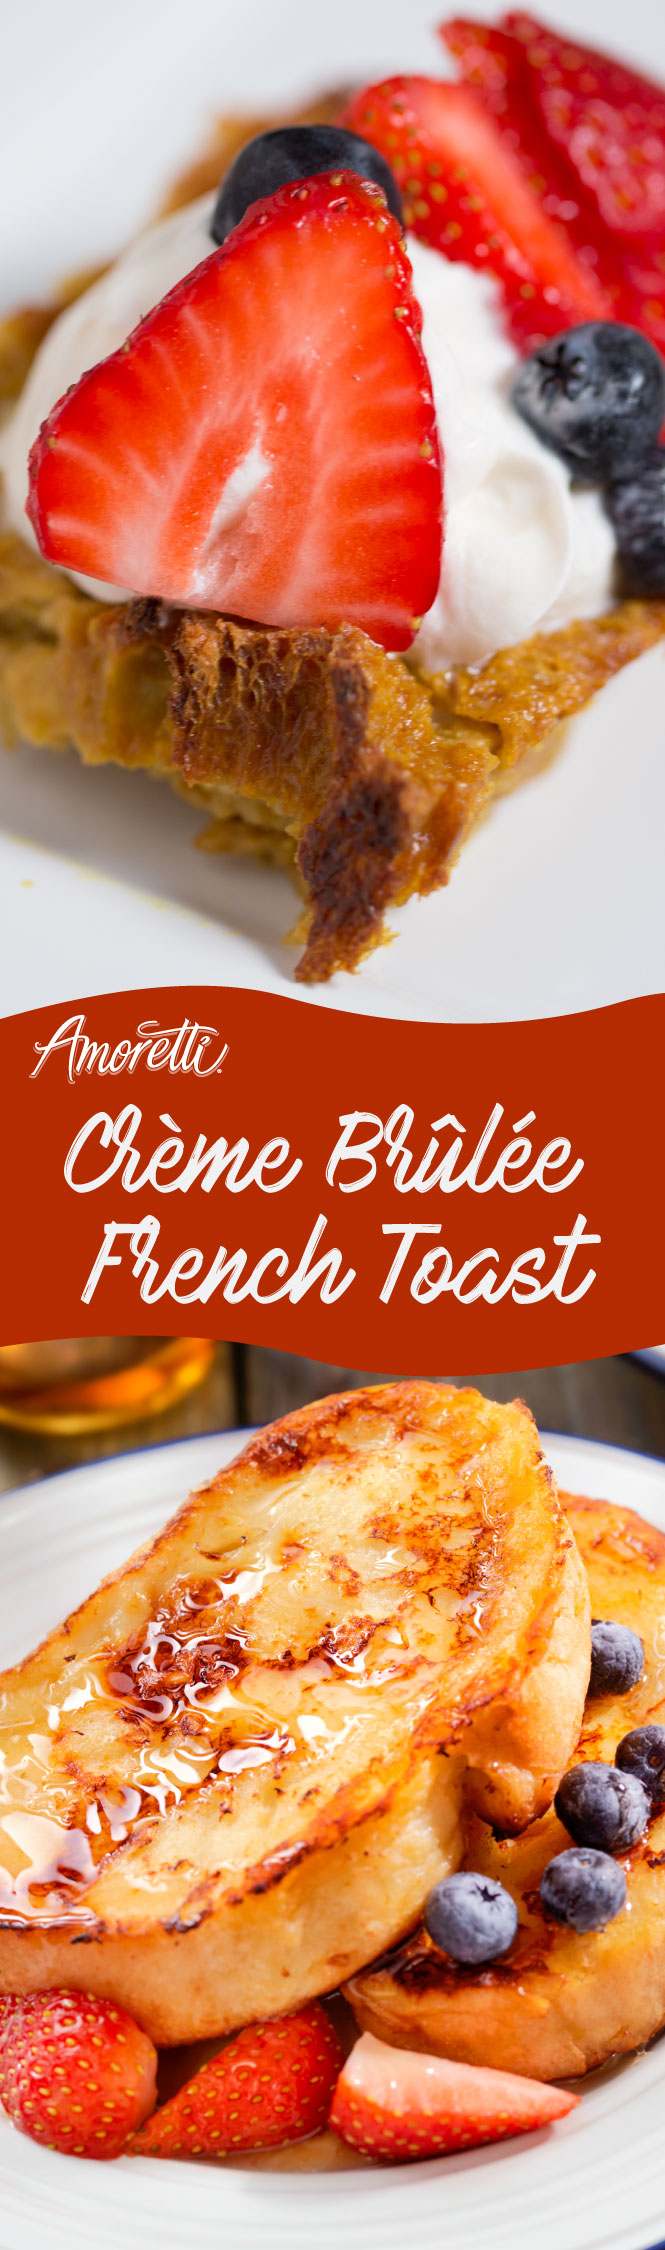 Combine your favorite brunch desserts and make your one of a kind Crème Brûlée French Toast!